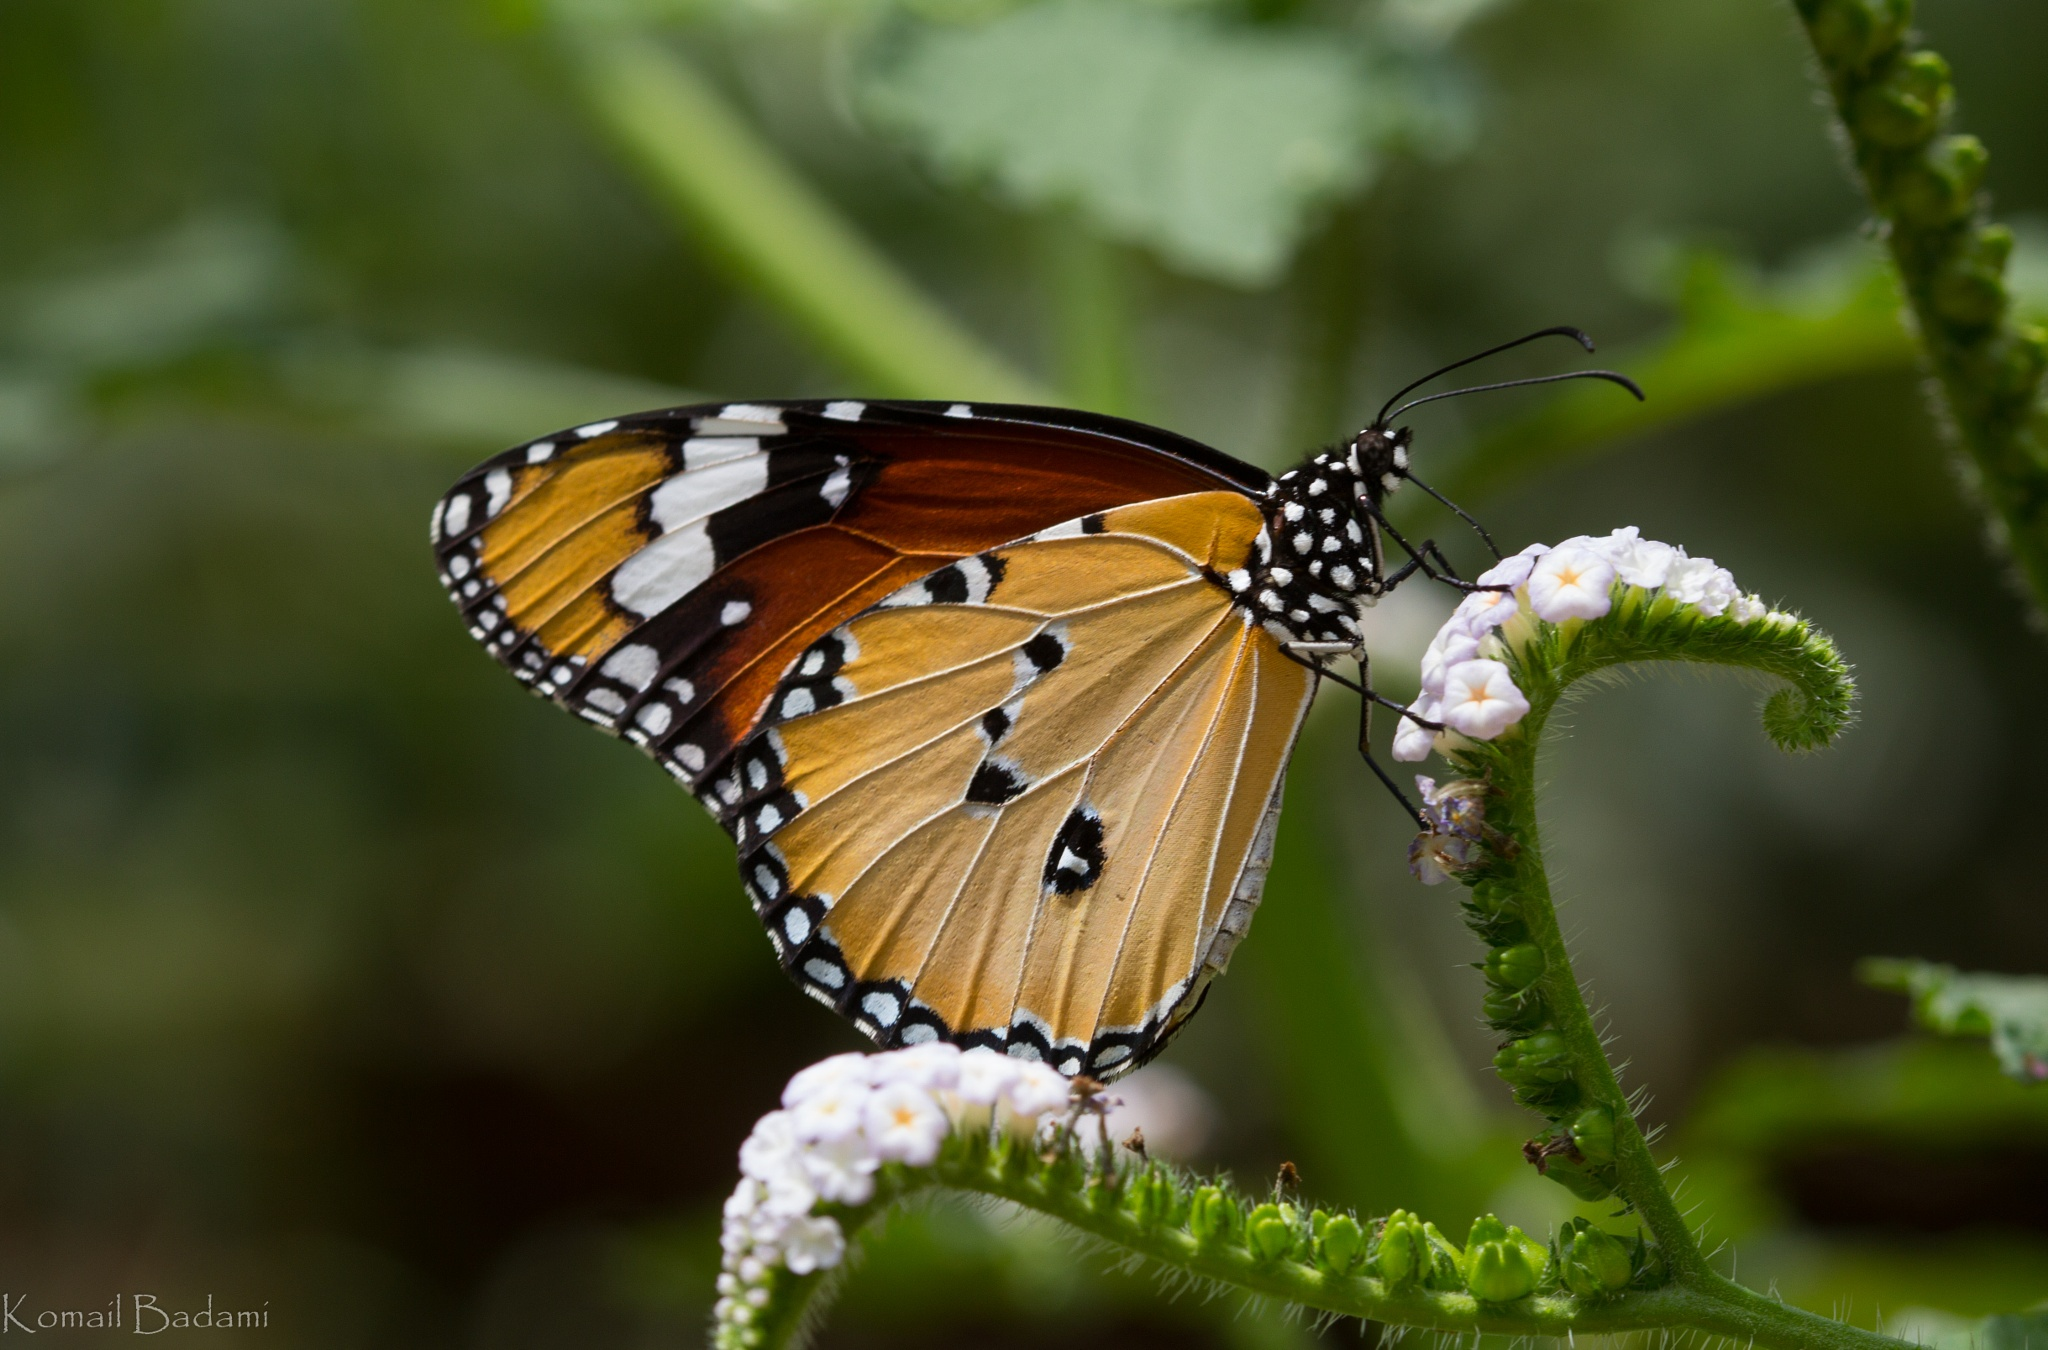 Common Tiger Butterfly by Komail Badami